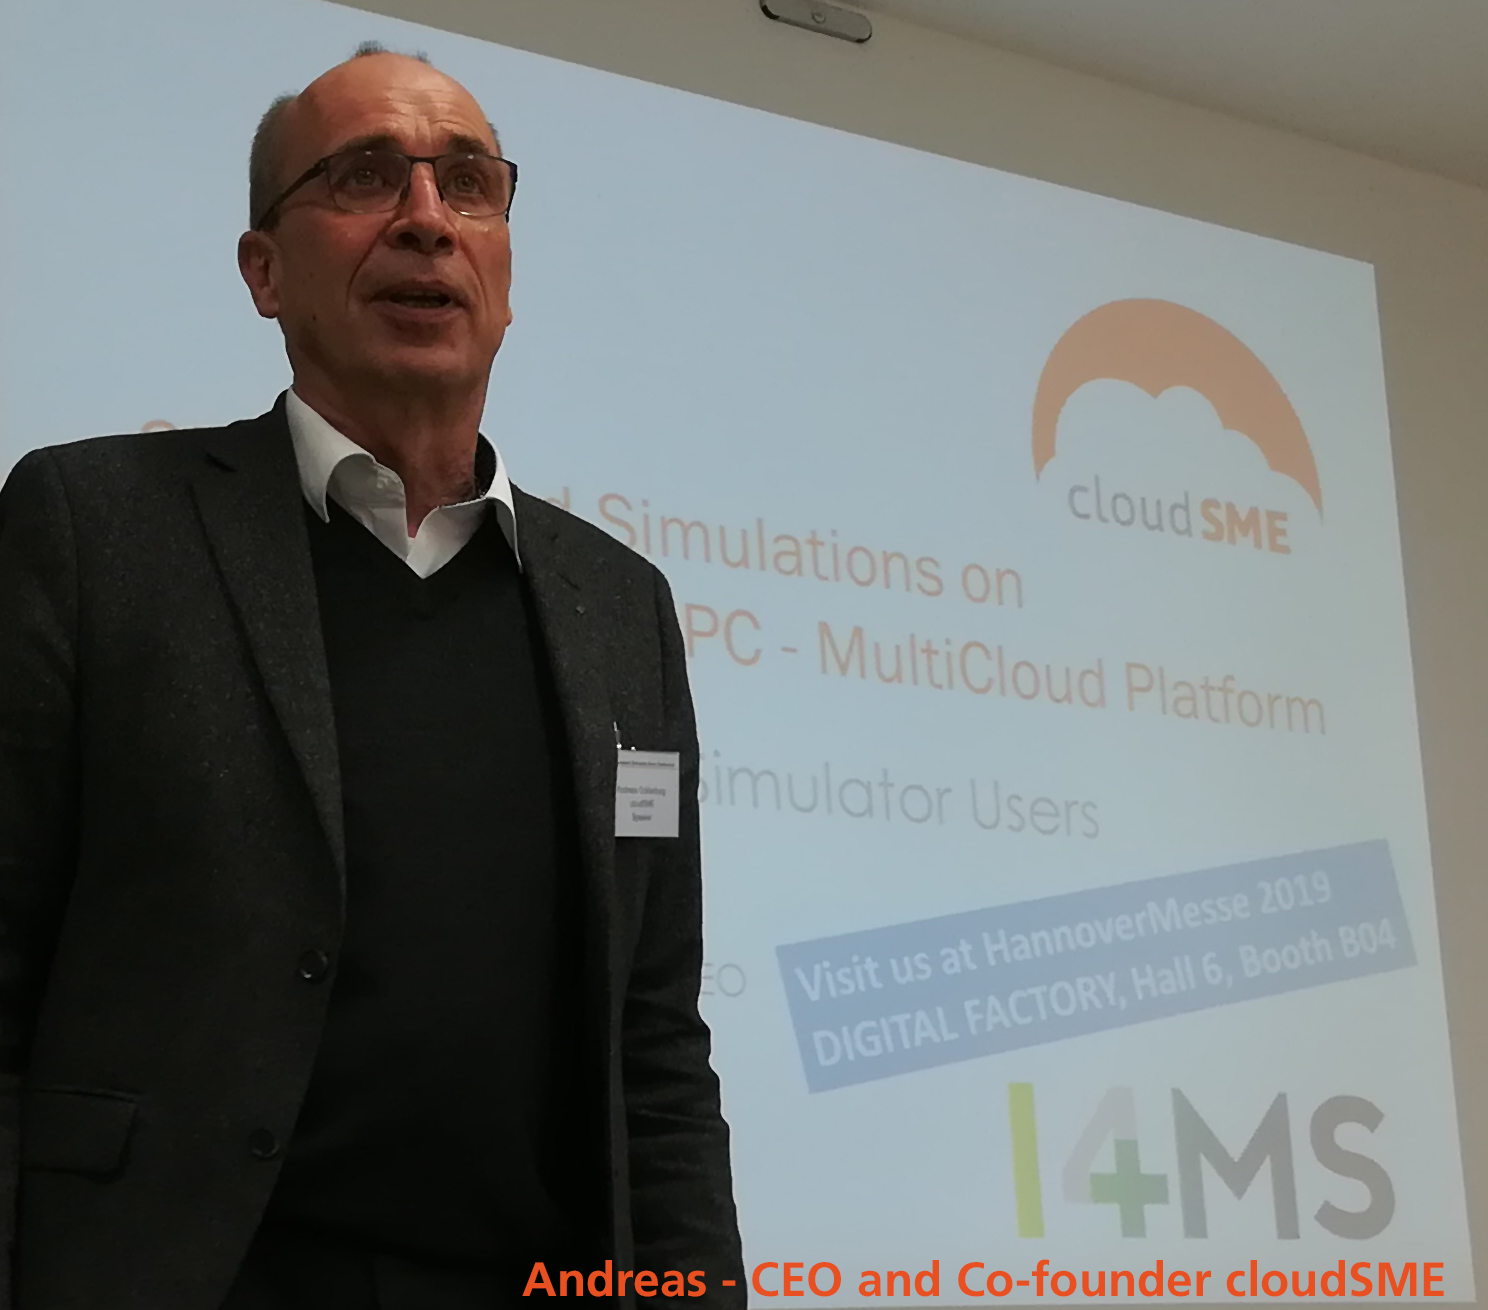 Andreas, CEO & Co-founder cloudSME